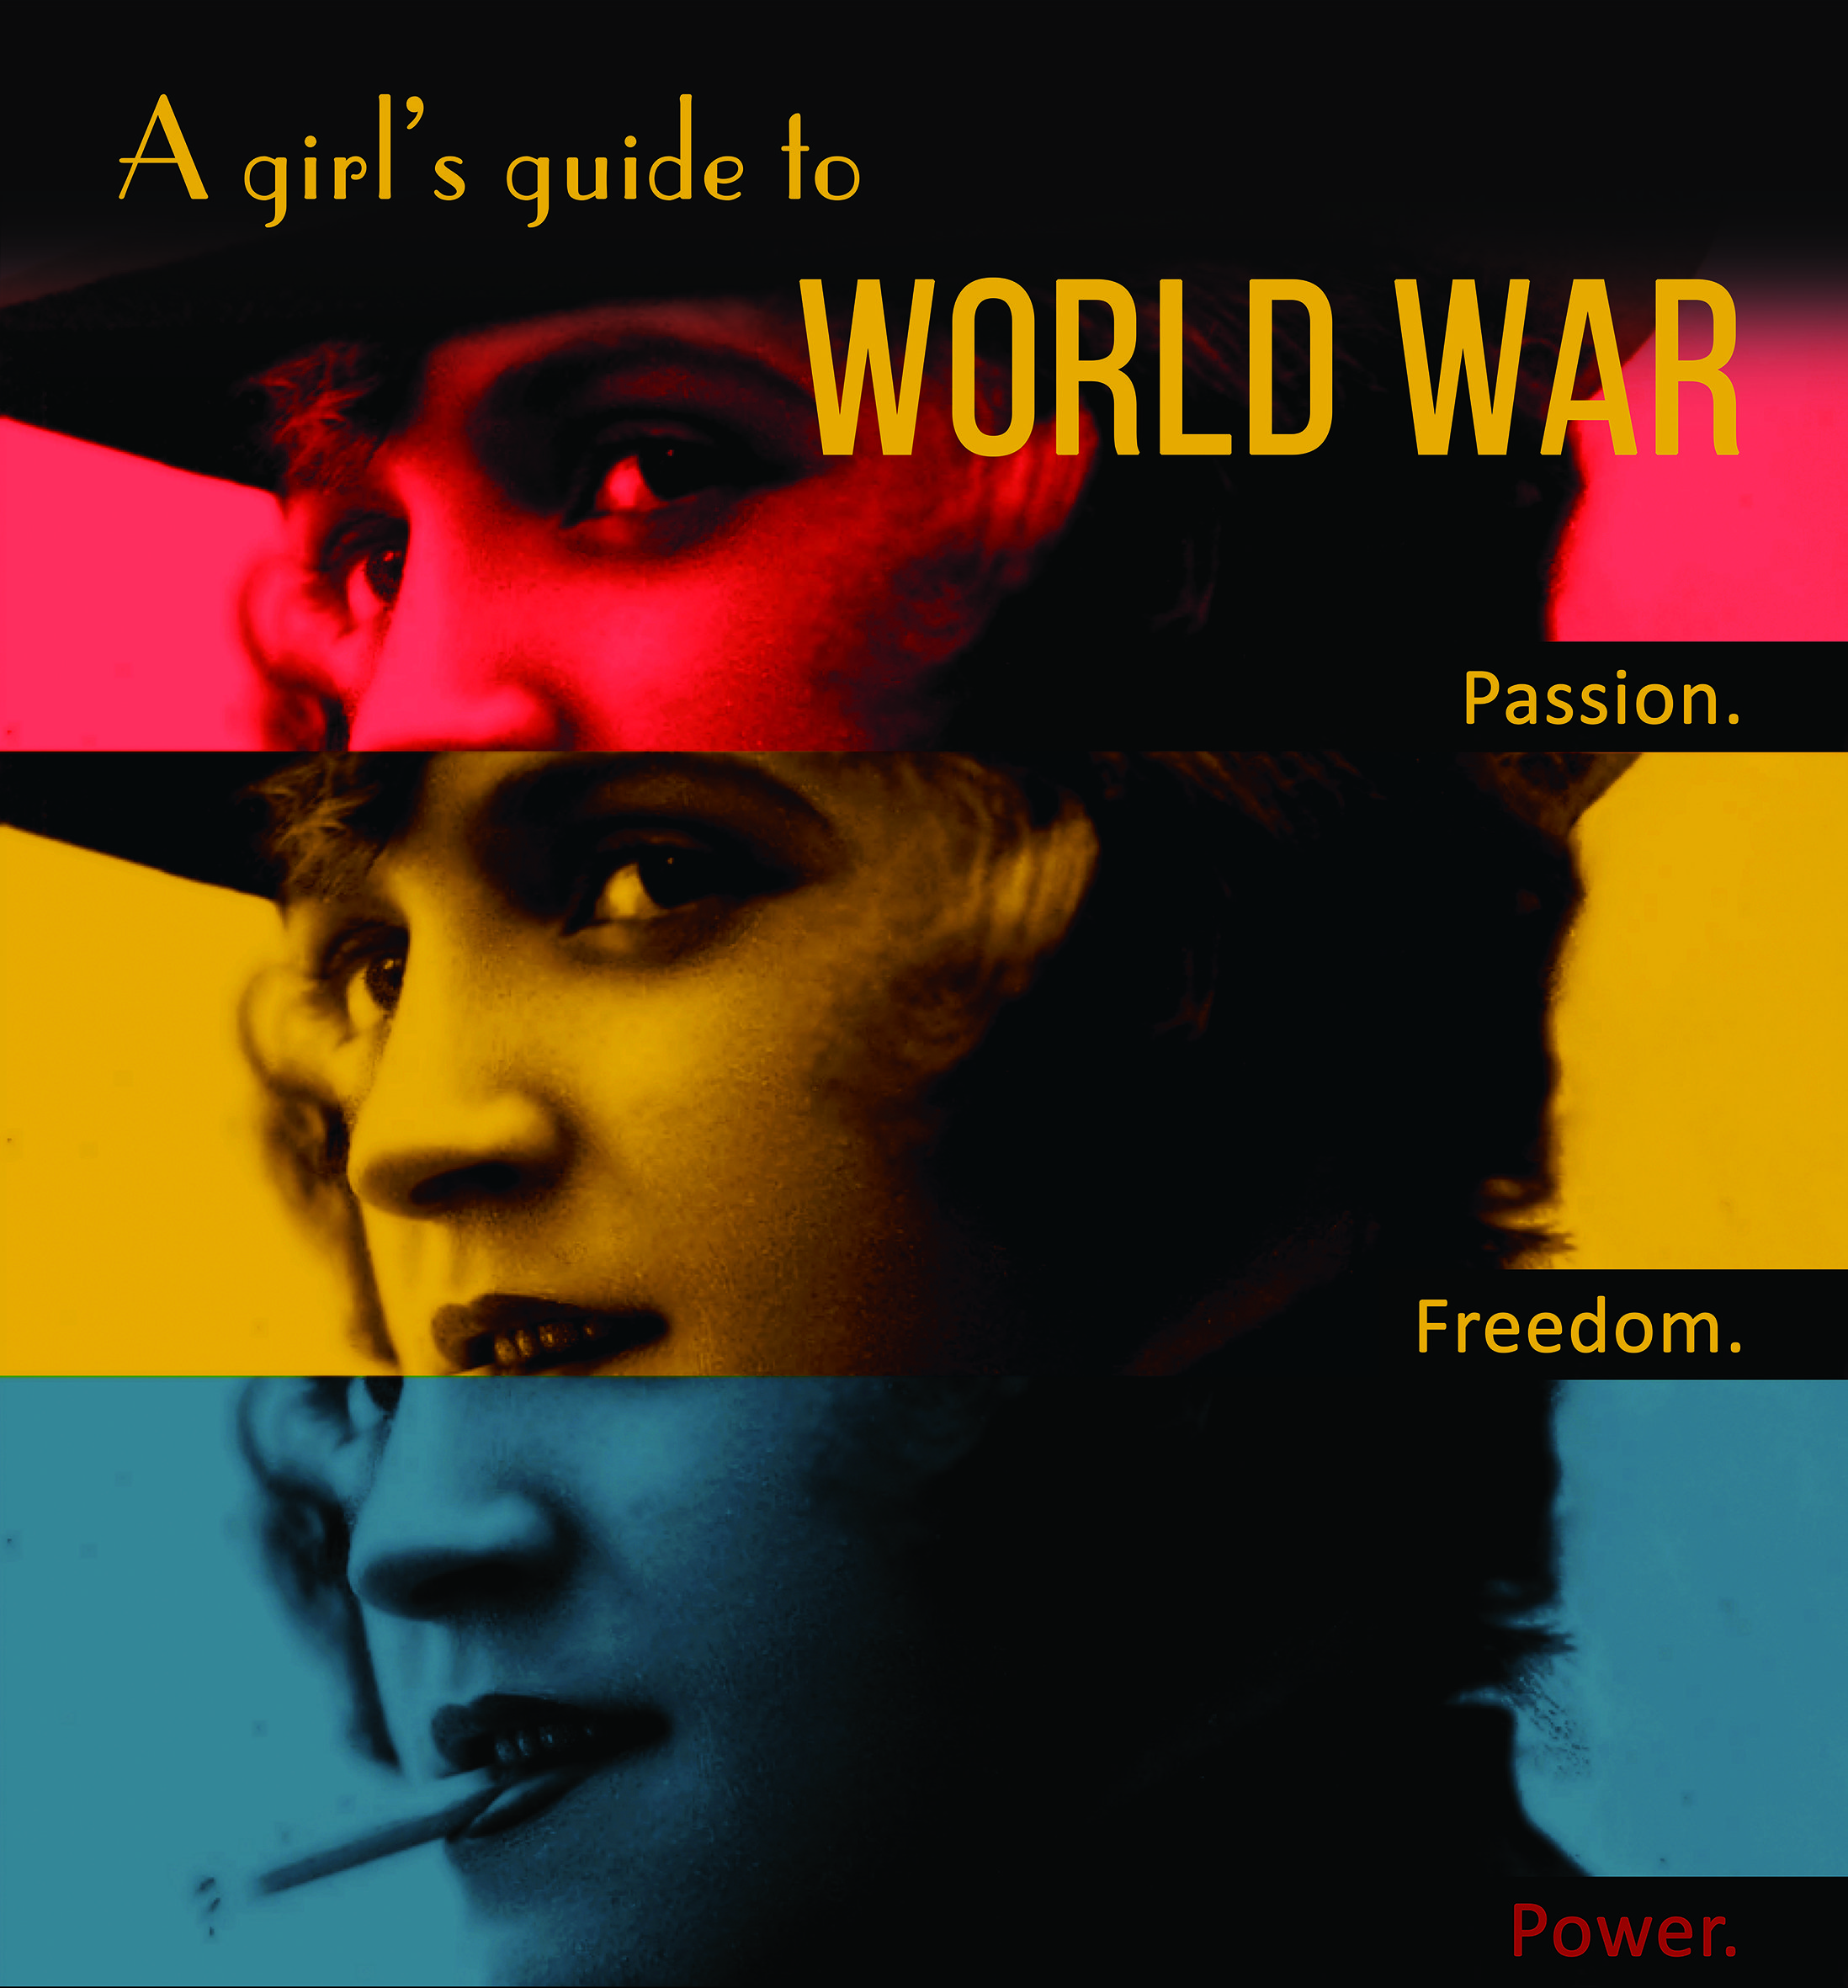 a girl's guide to world war